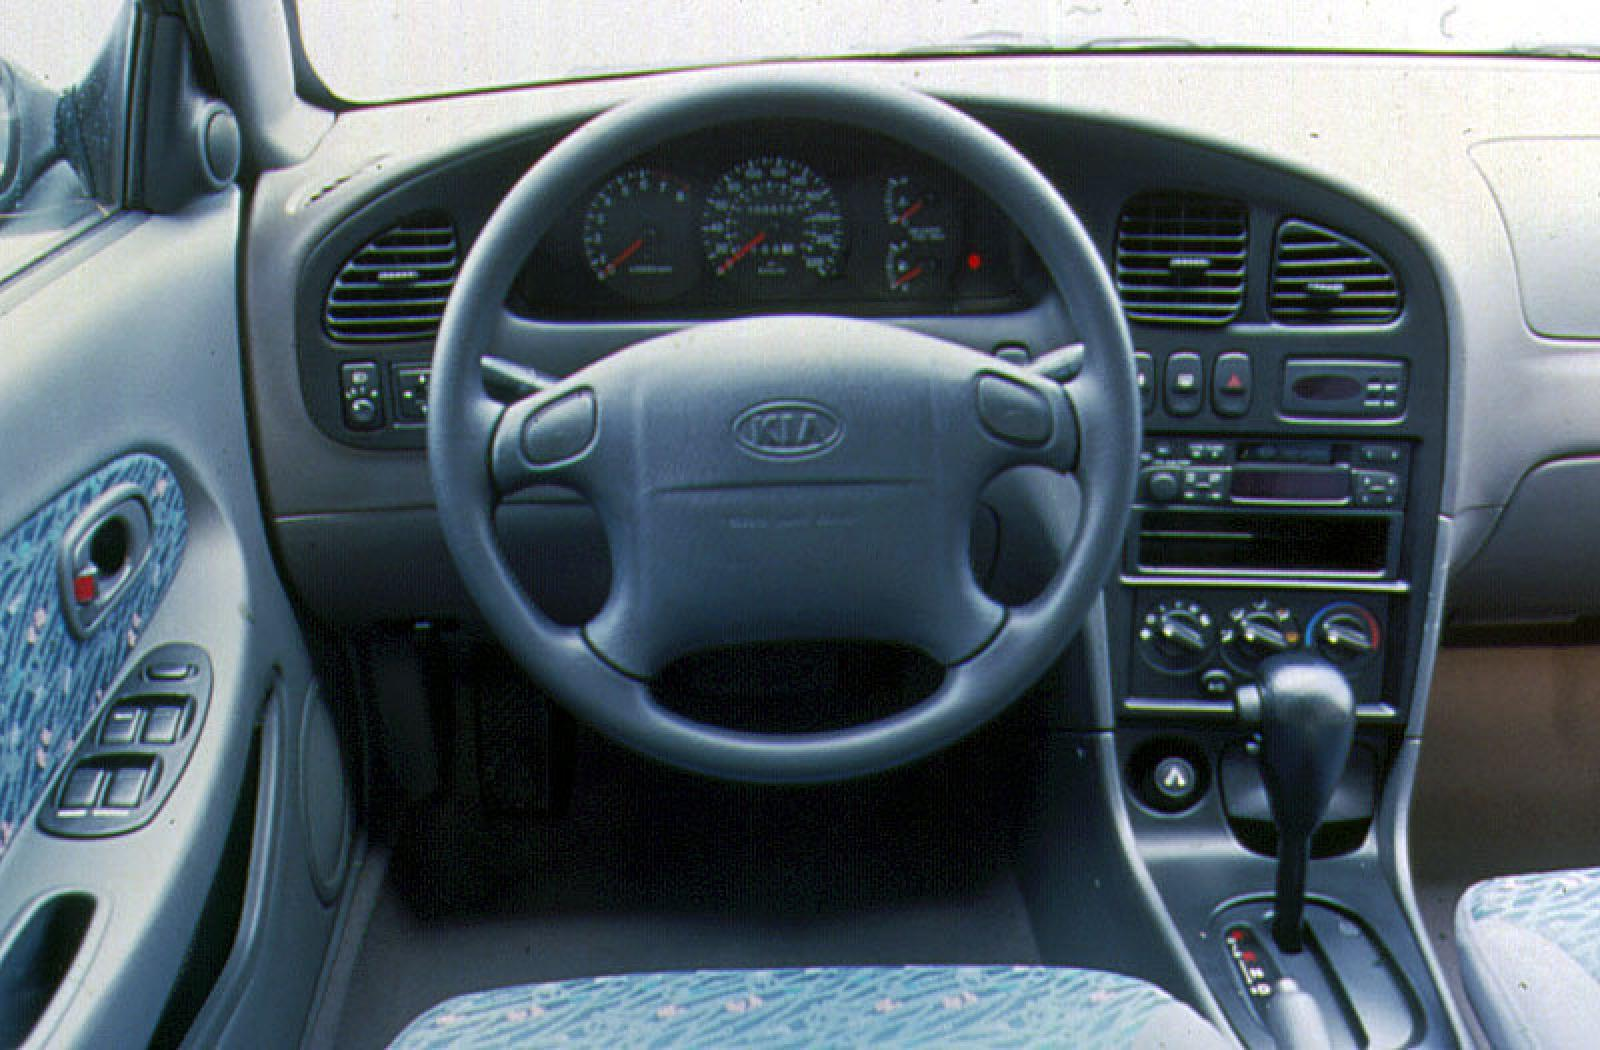 2001 kia sephia information and photos zombiedrive